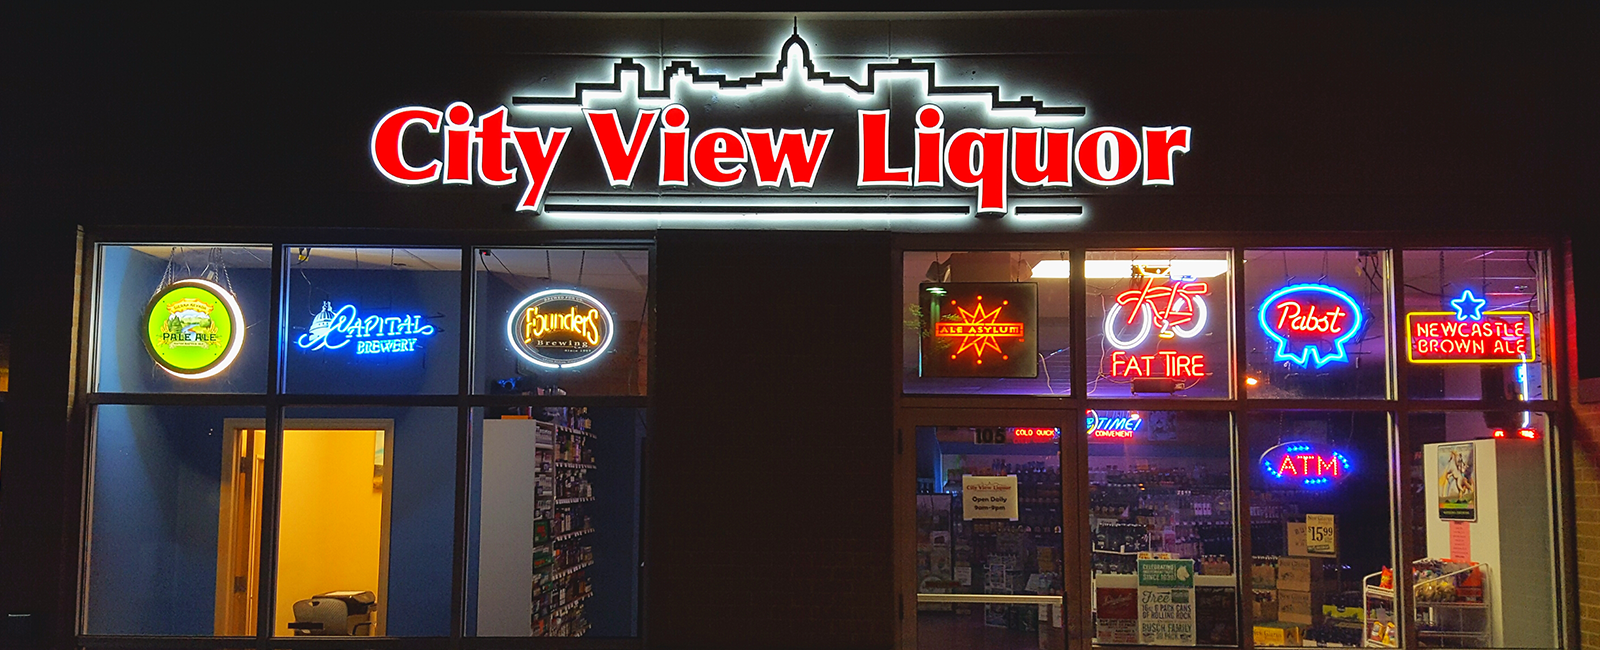 City View Liquor